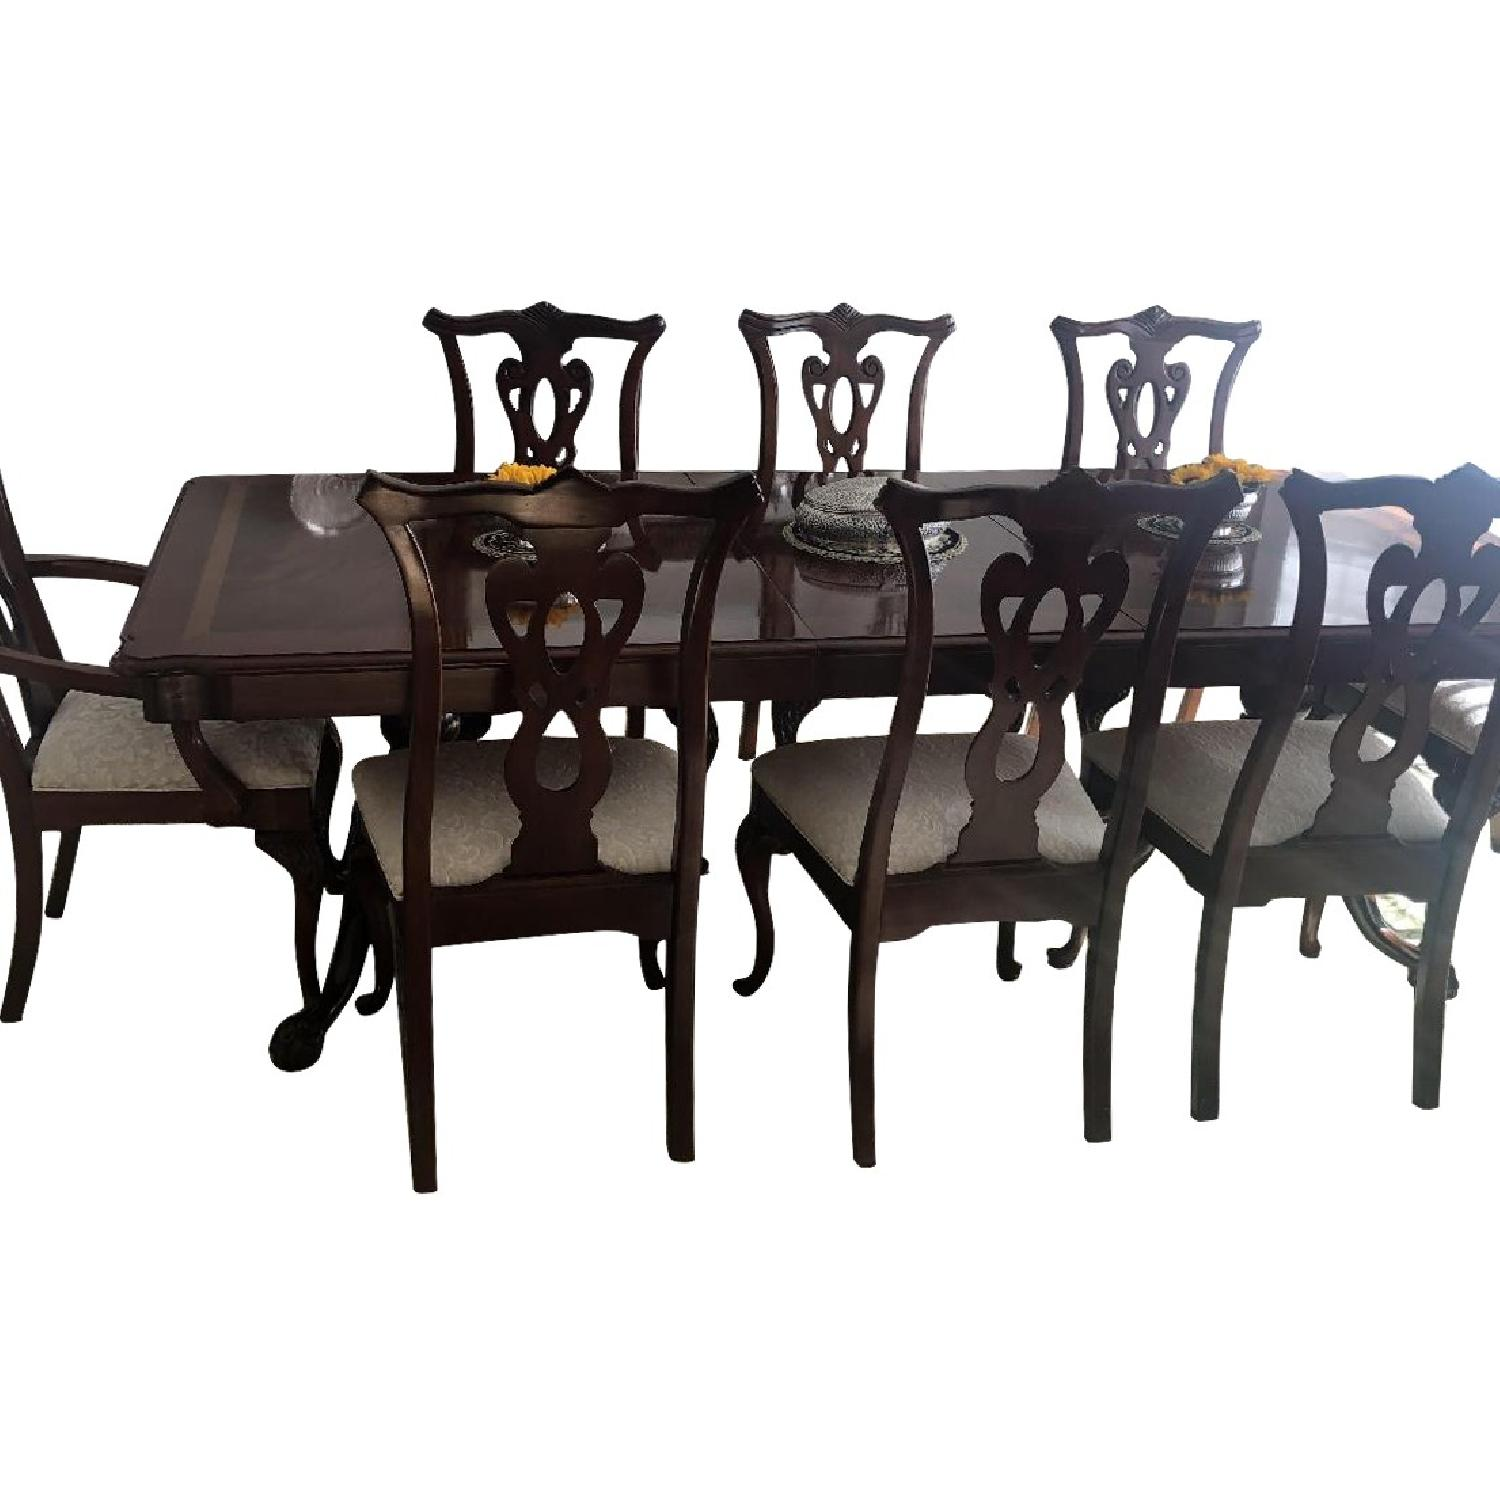 Thomasville Mahogany Dining Table w/ 8 Chairs - image-0